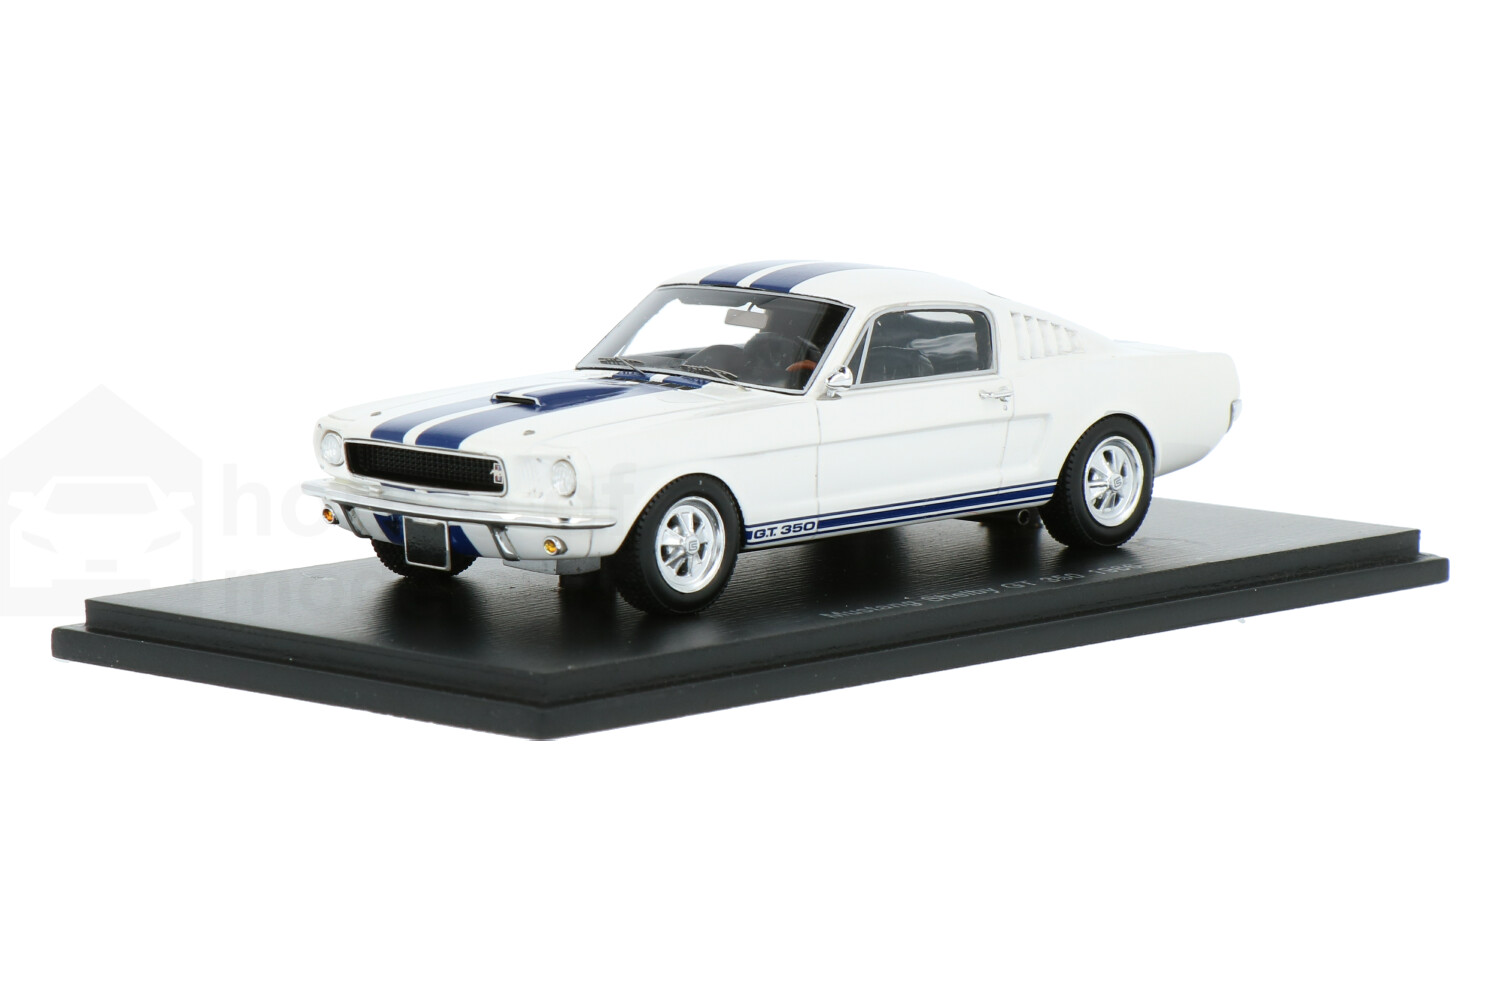 Ford Mustang Shelby GT 350 - Modelauto schaal 1:43